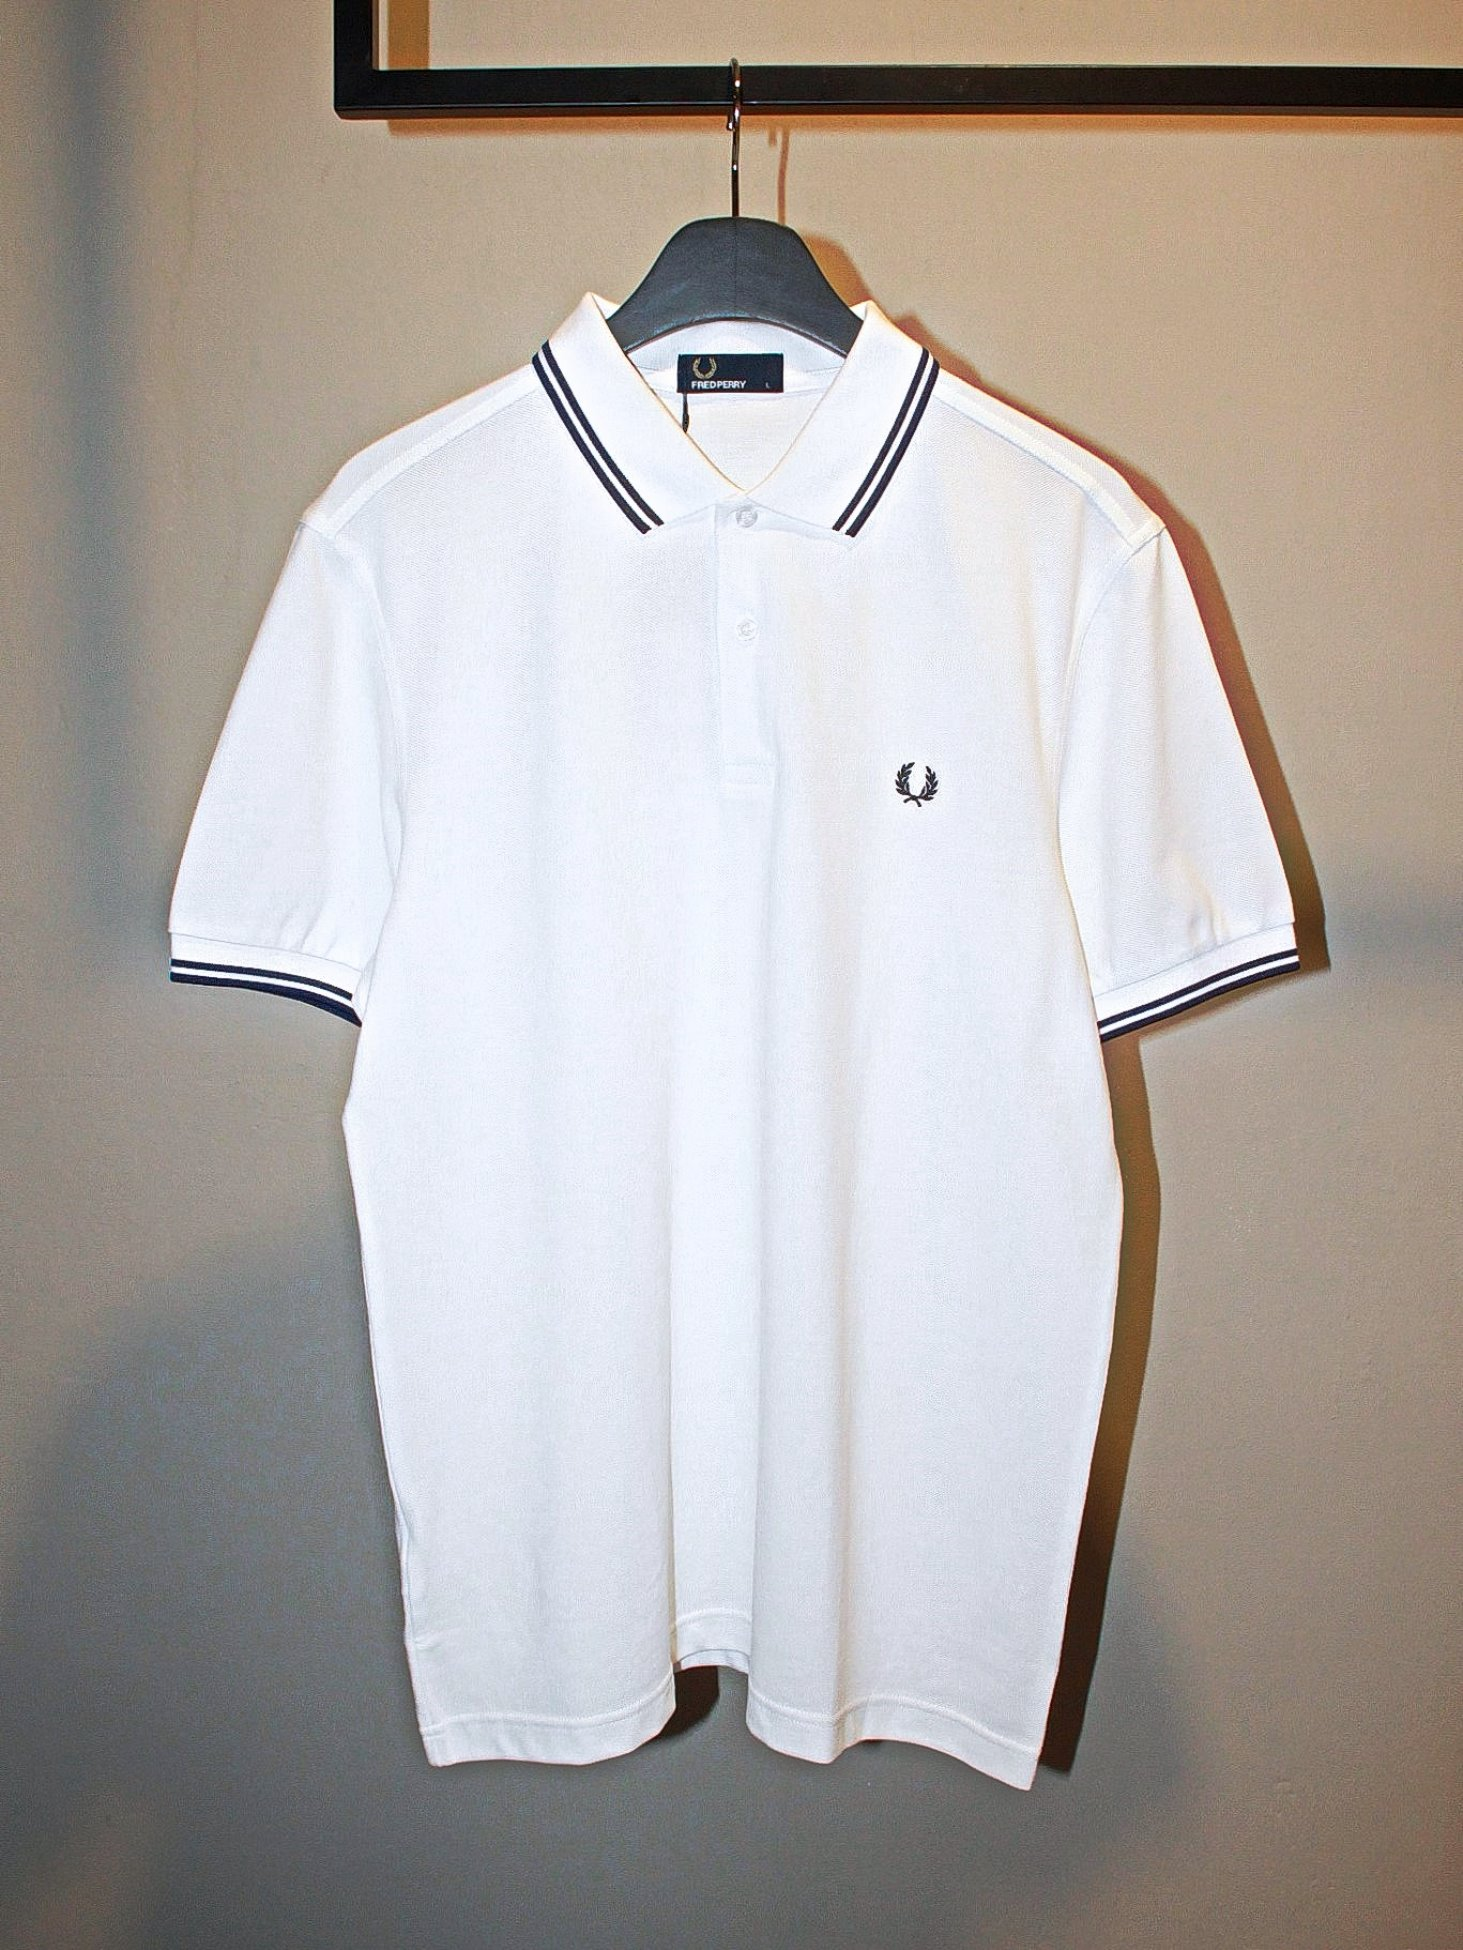 [Fred Perry] Twin Tipped FP Shirt - White/French Navy